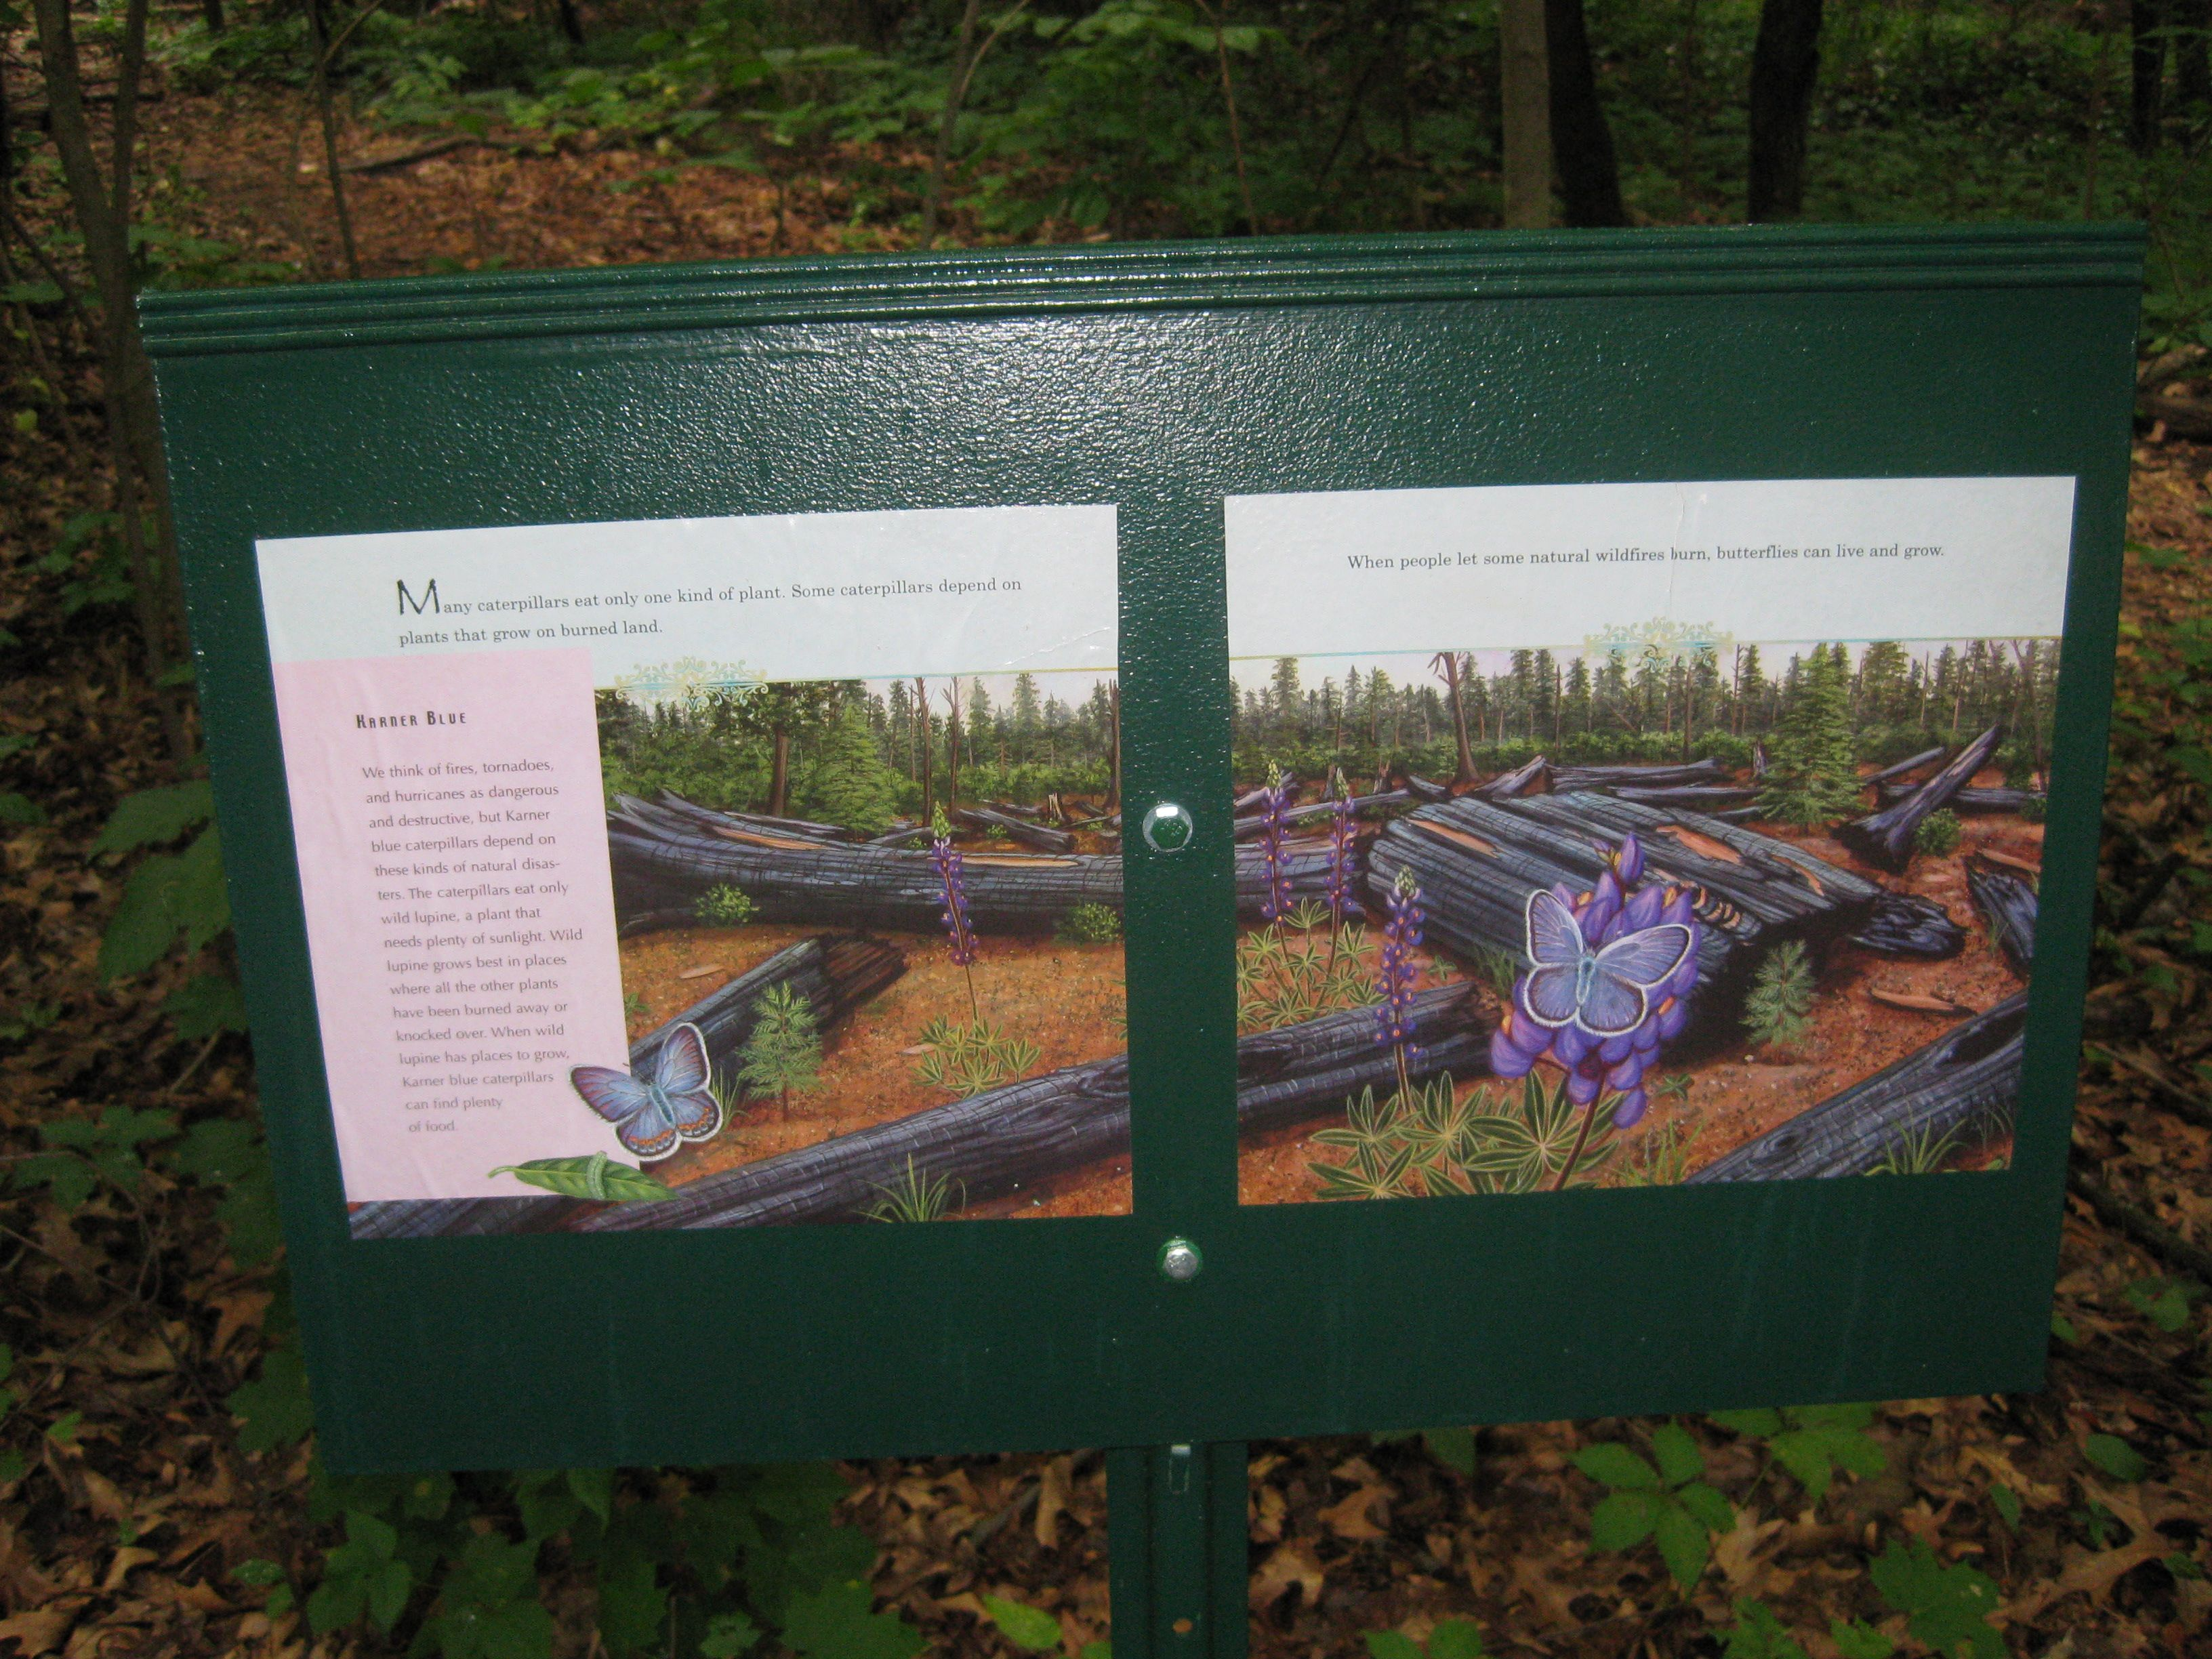 Storywalk featuring A Place for Butterflies at Broad Meadow Brook Wildlife Sanctuary in Worcester, MA.